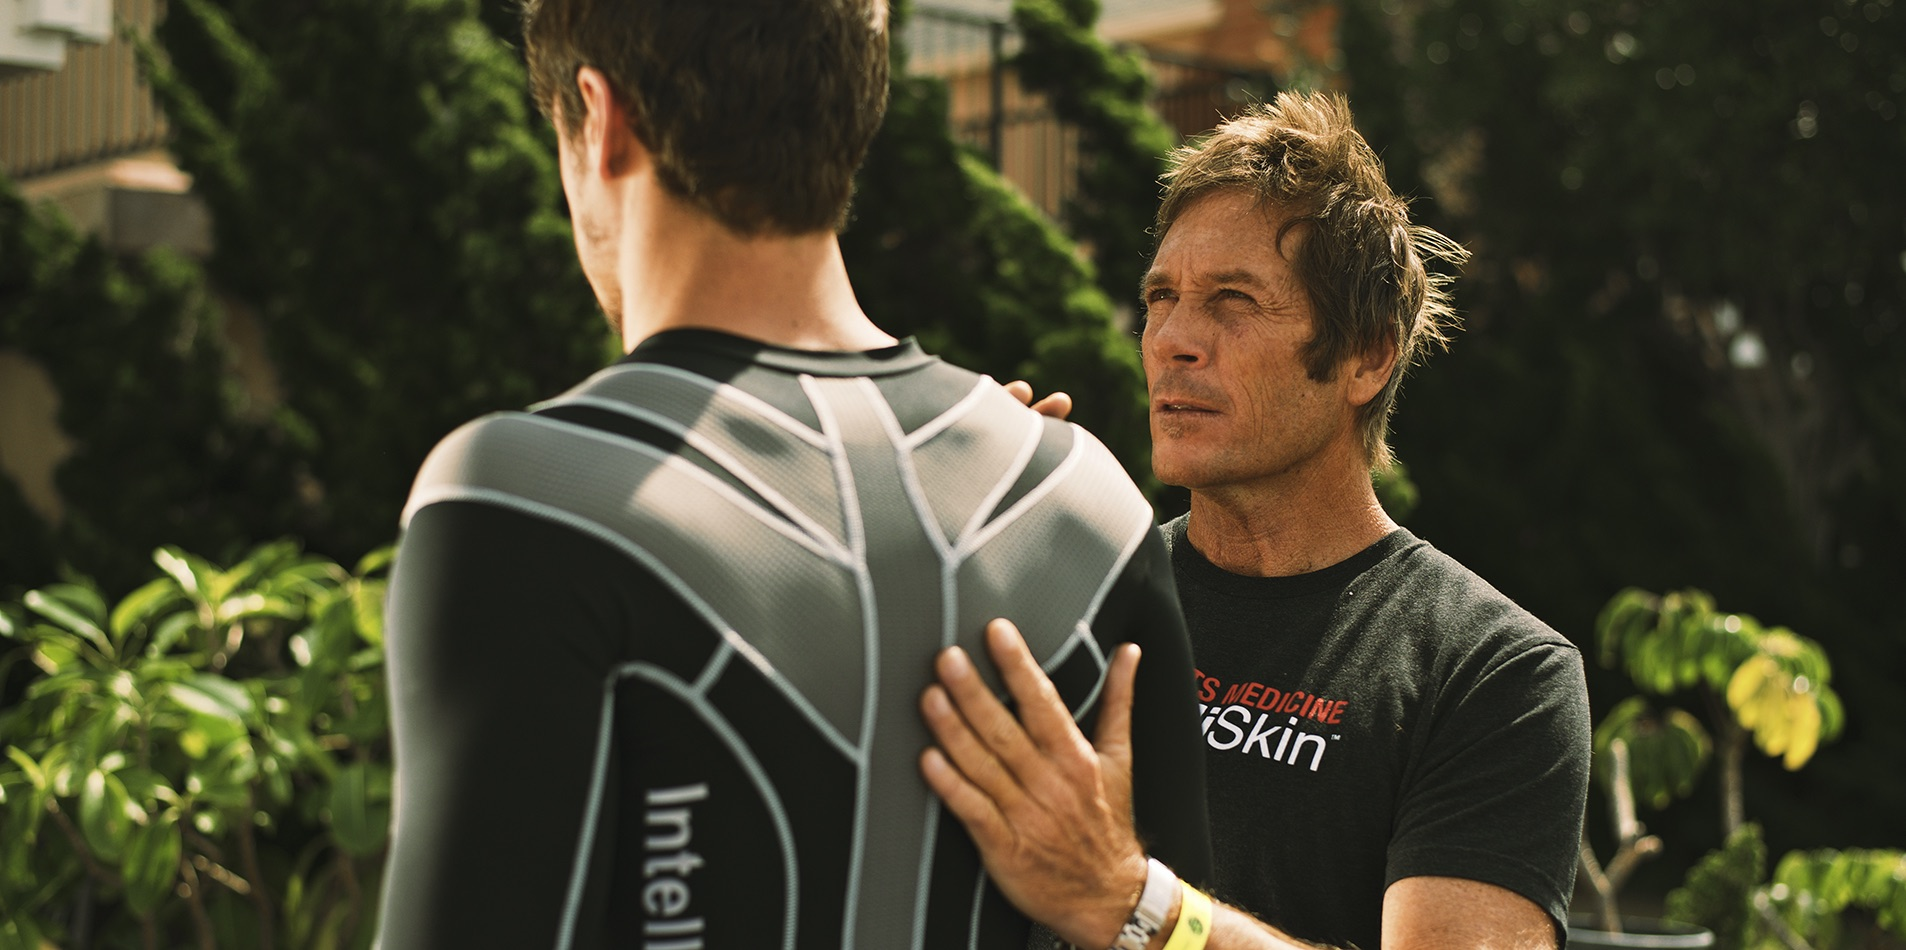 Dr. Tim Brown, founder of IntelliSkin, has branded Human Technology TM apparel that gives immediate results.